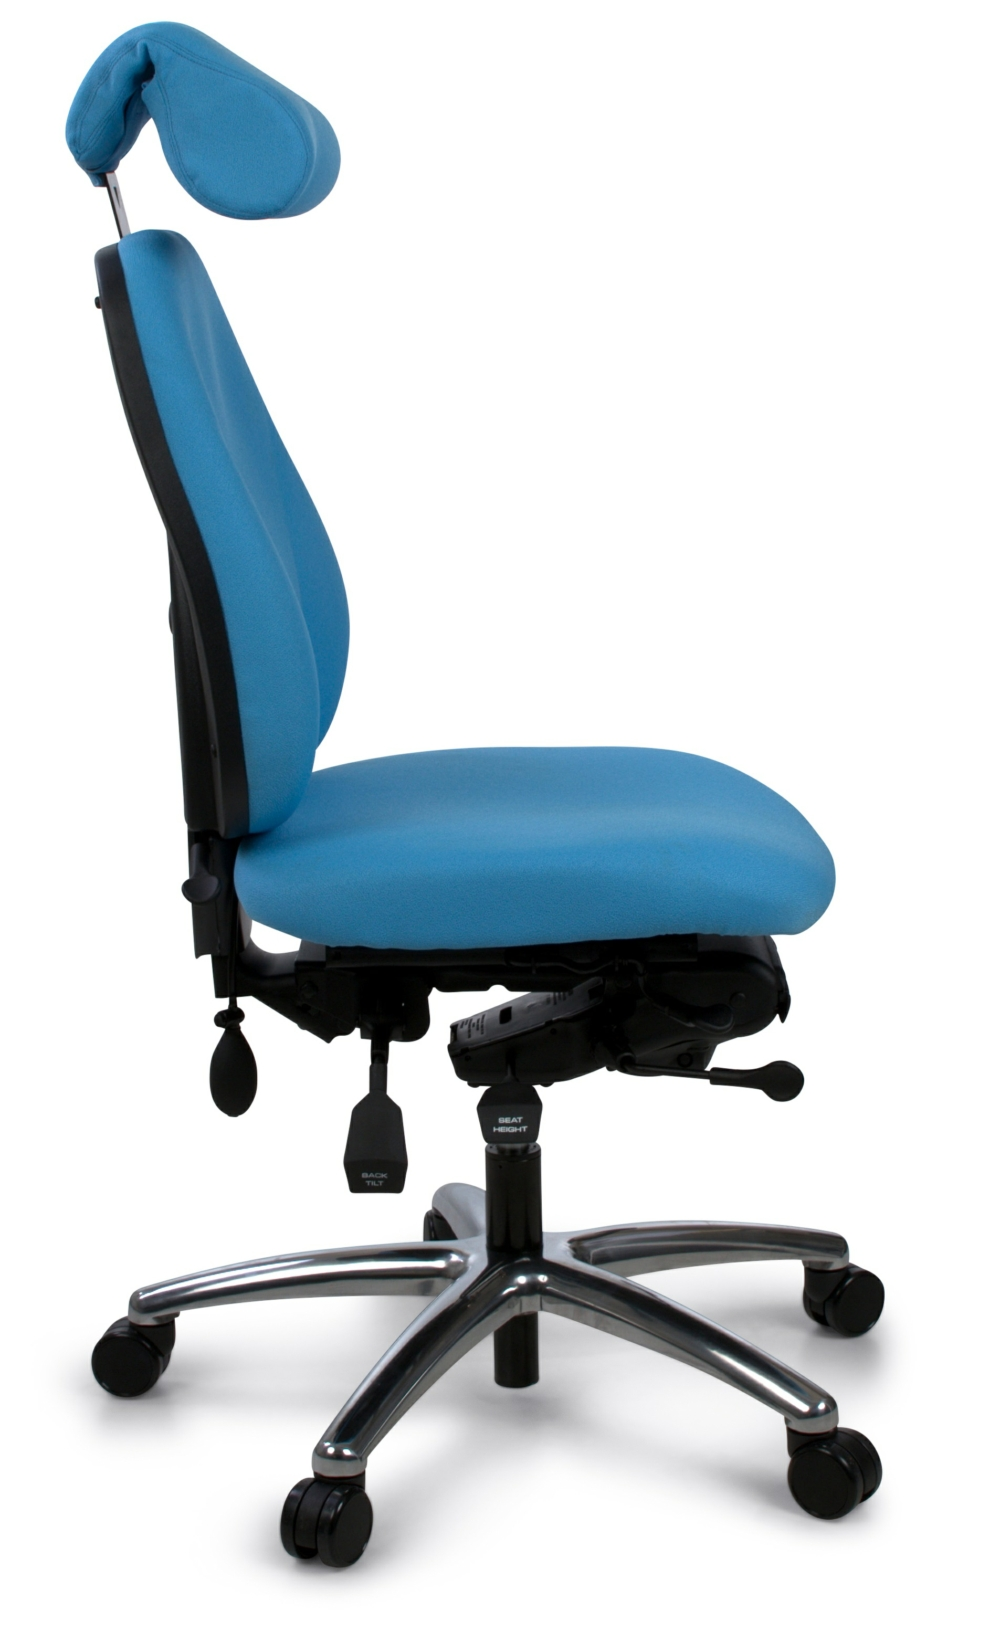 opera 20 5 ergonomic office chair. Black Bedroom Furniture Sets. Home Design Ideas